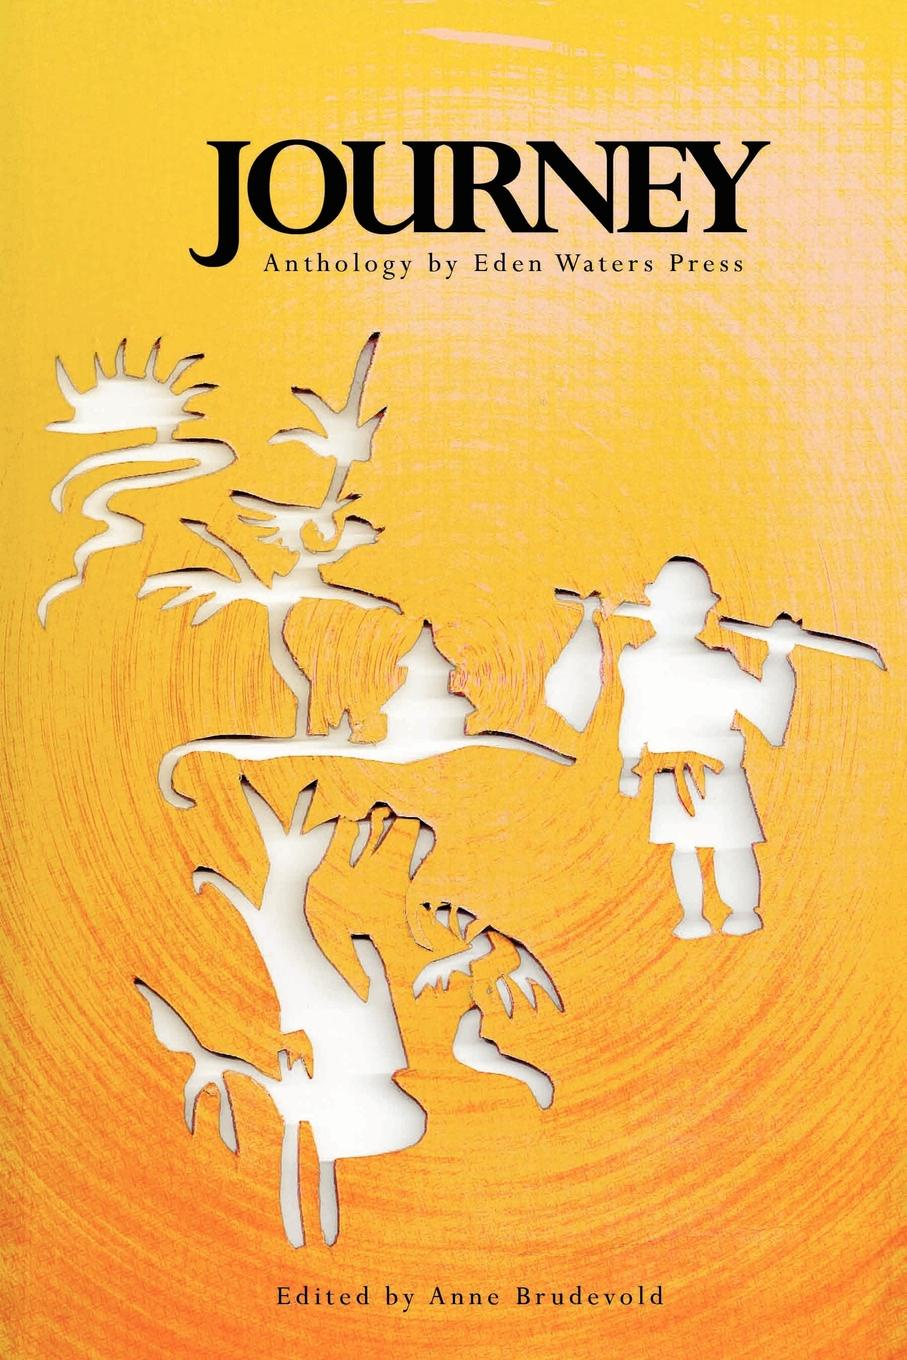 Anne Brudevold Journey Anthology by Eden Waters Press